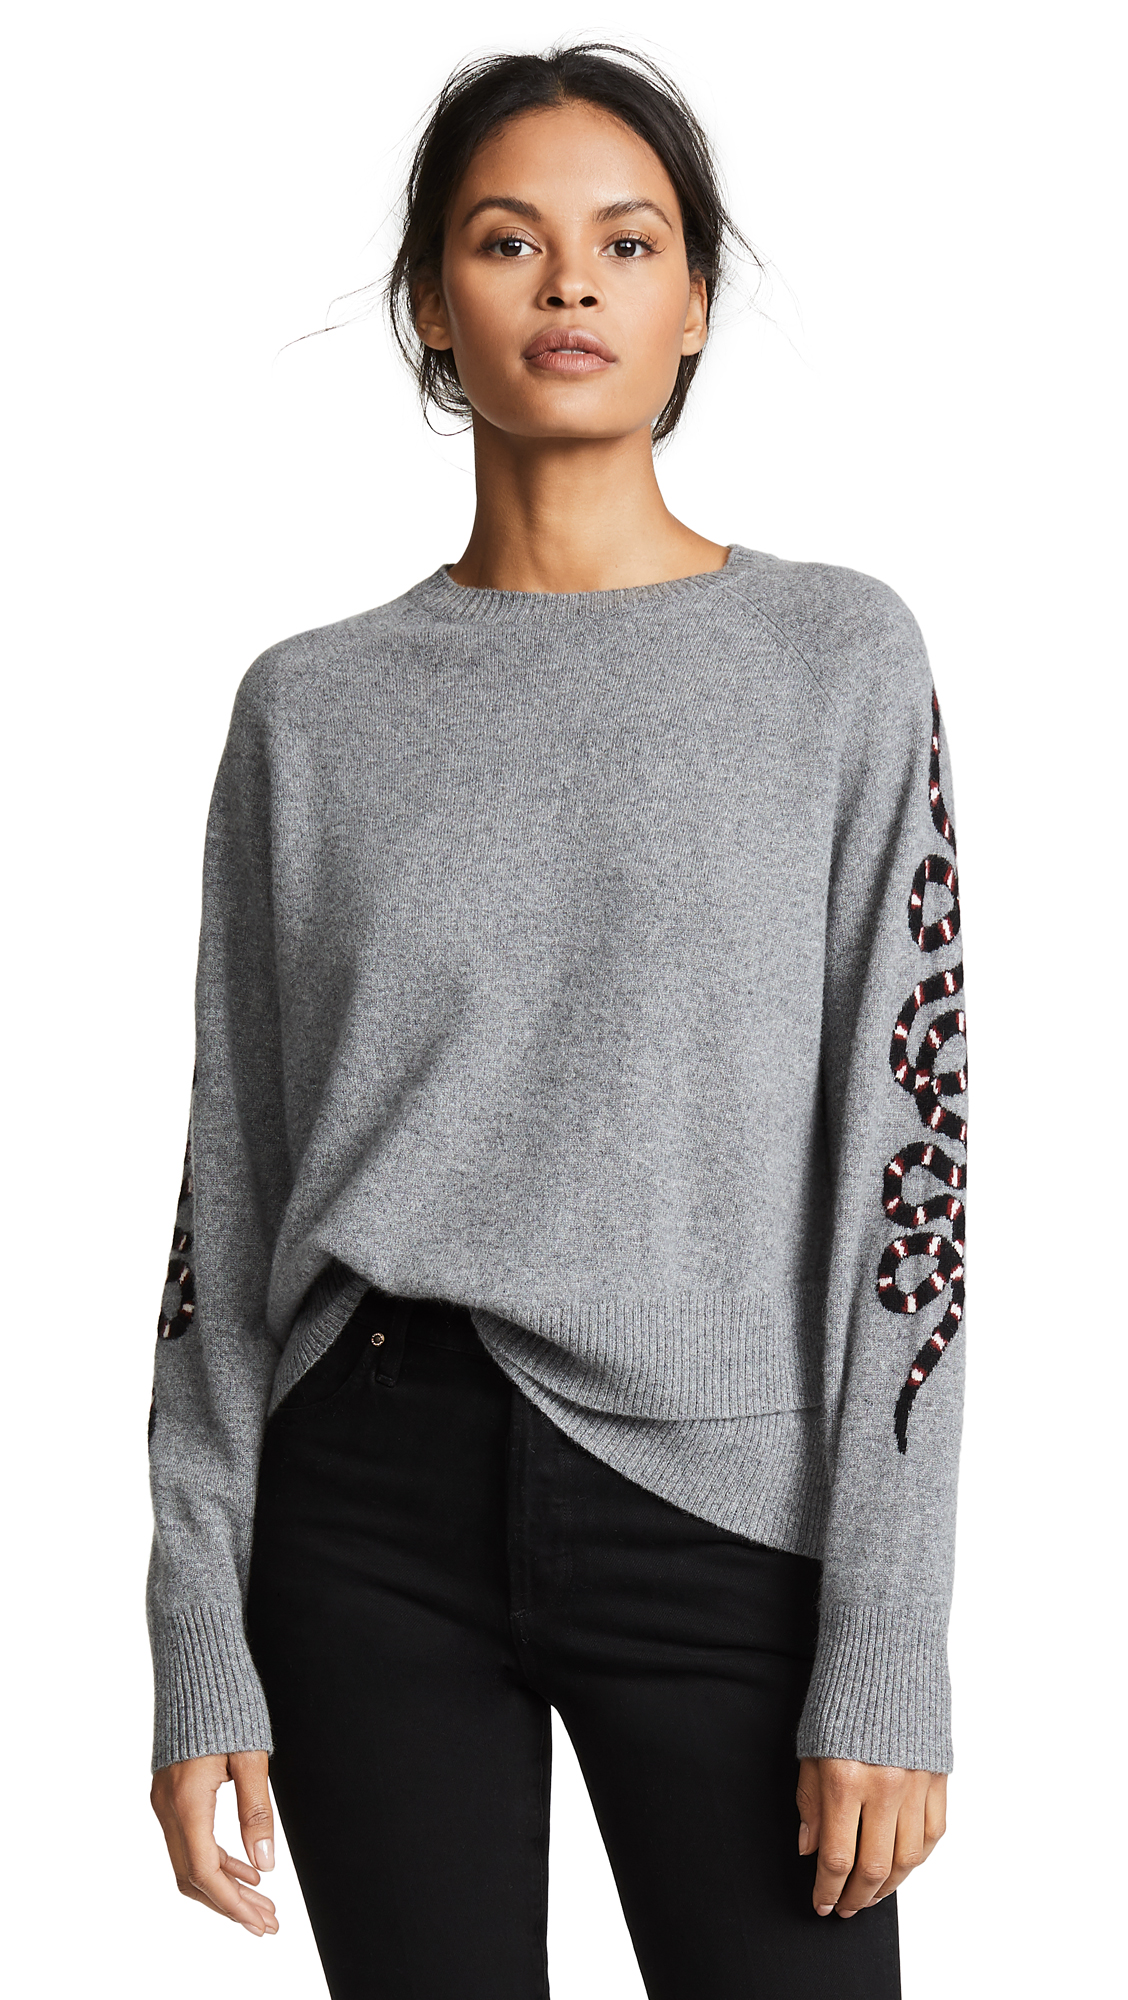 360 SWEATER Cashmere Serpent Sweater In Mid Heather Grey/Multi